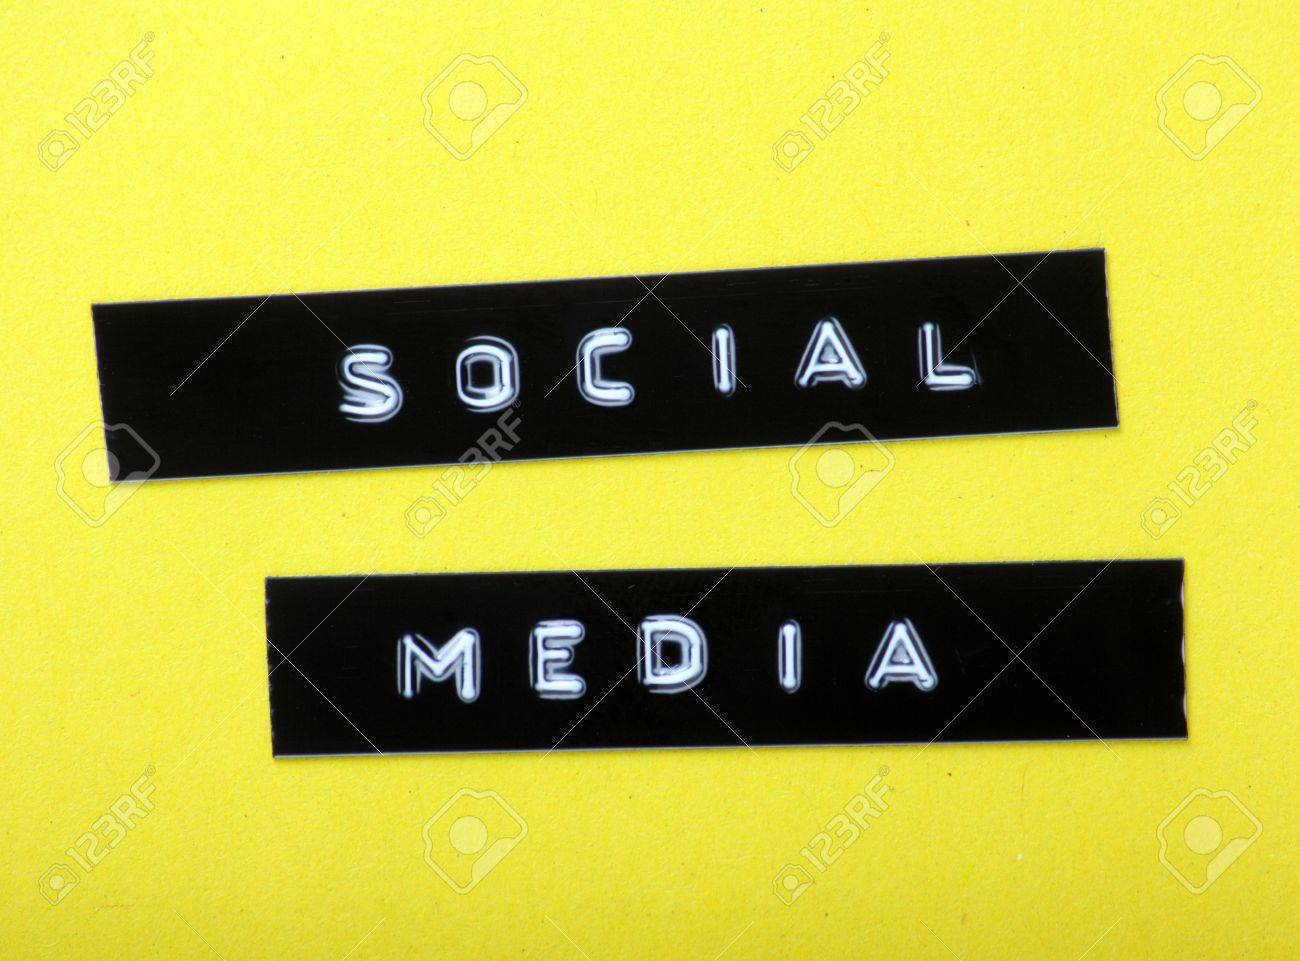 the words social media made into labels an embossed letter stock photo the words social media made into labels an embossed letter label maker and fixed to a yellow paper background